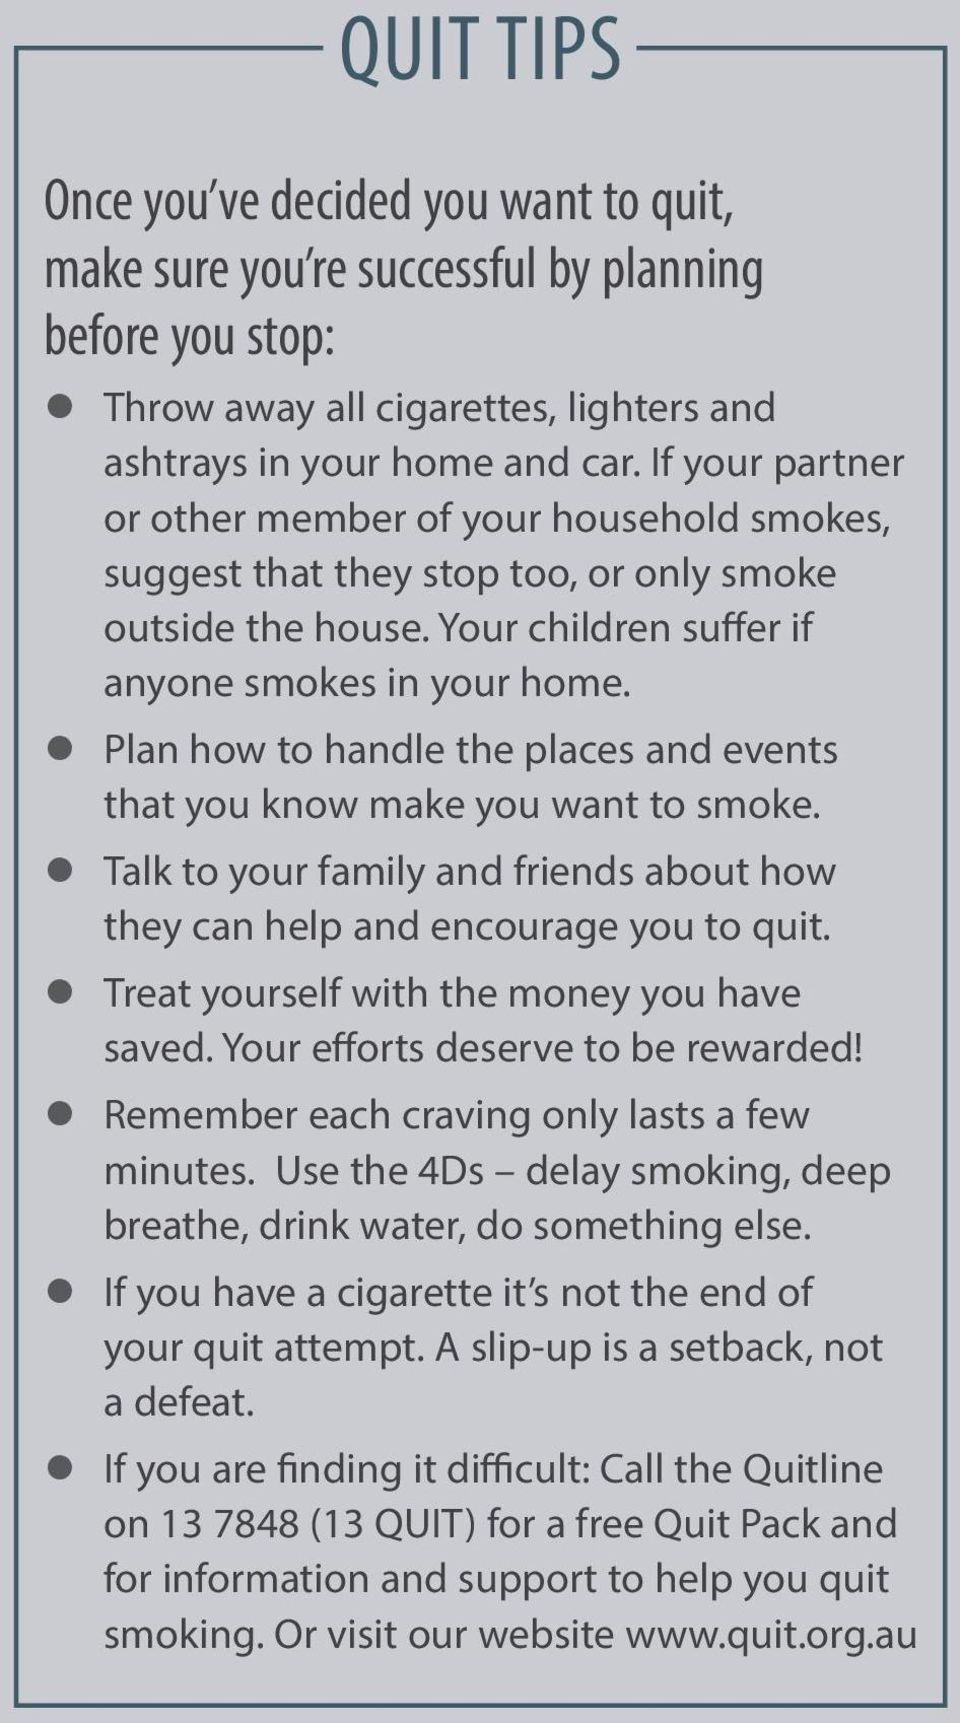 Plan how to handle the places and events that you know make you want to smoke. Talk to your family and friends about how they can help and encourage you to quit.